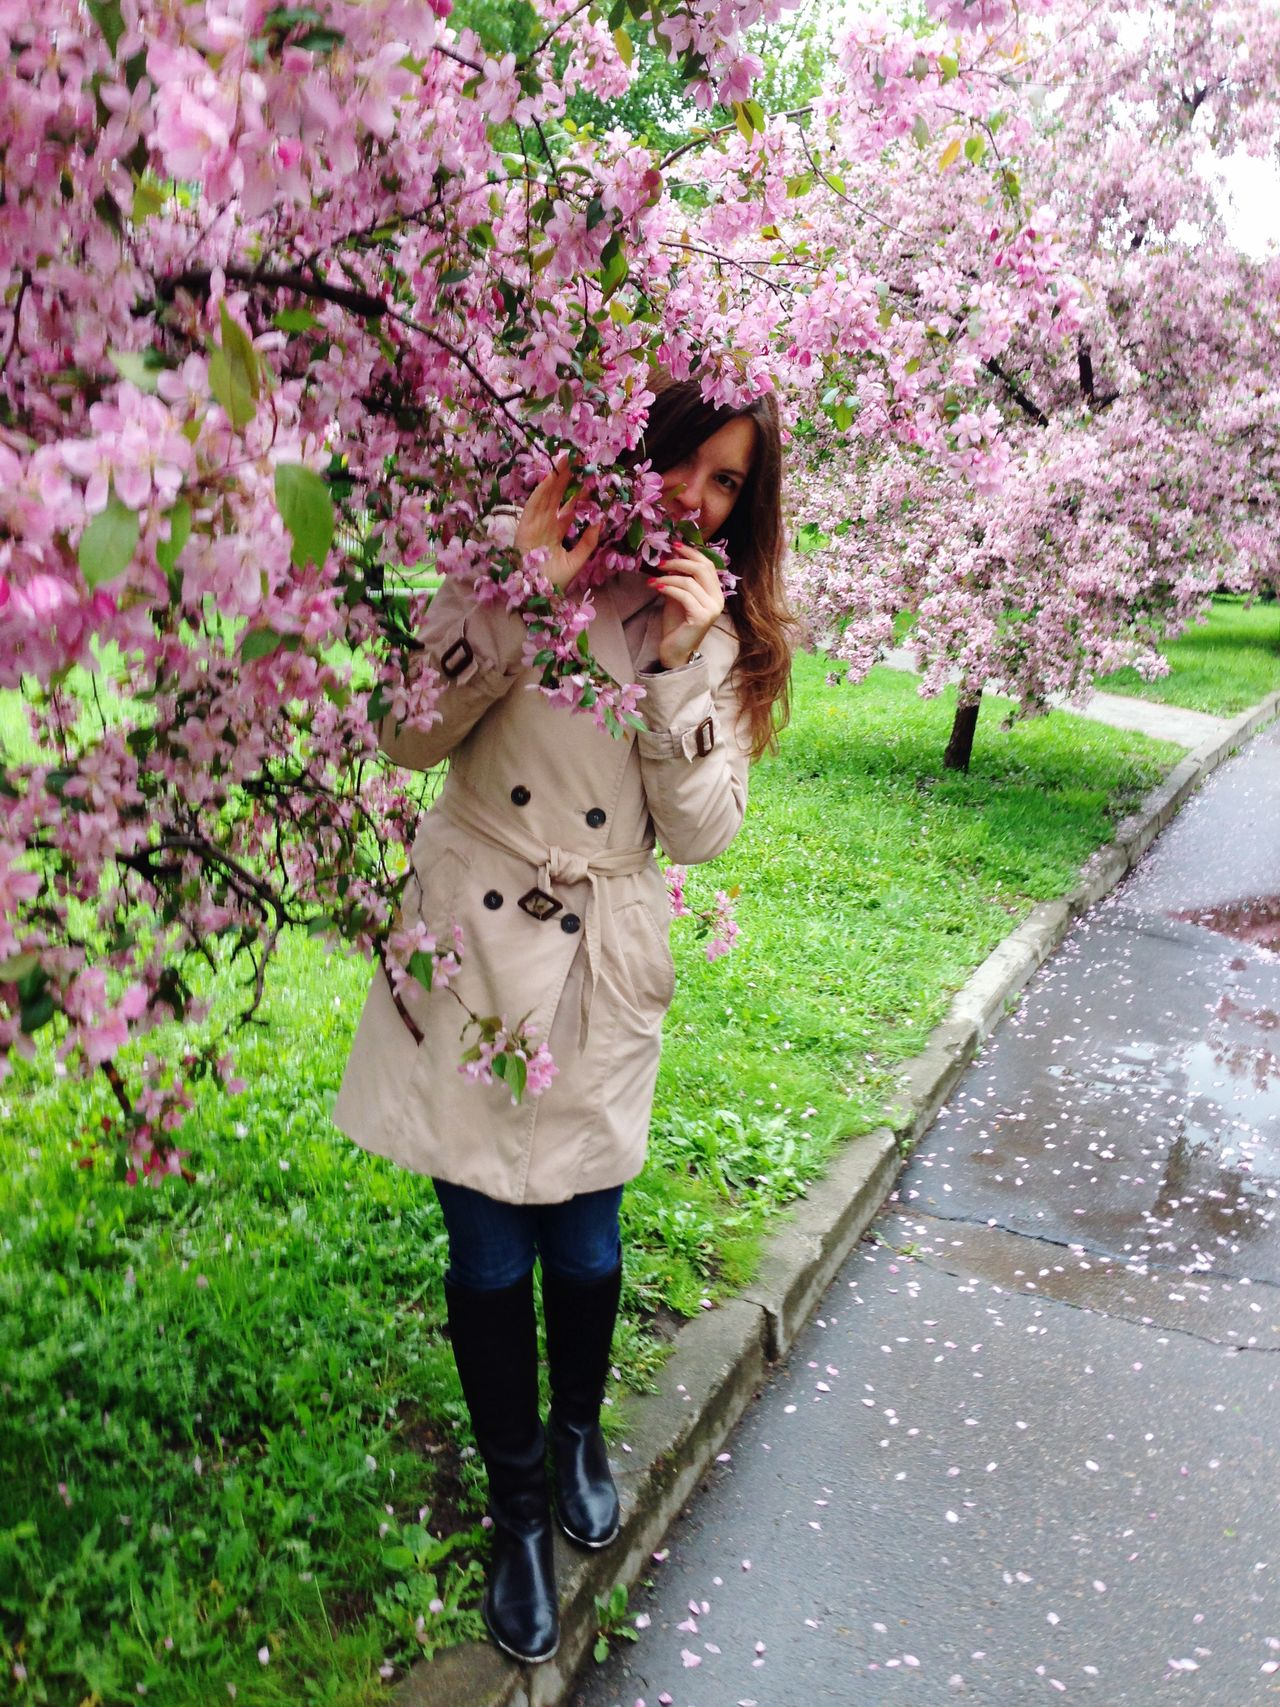 Standing Nature Outdoors Tree Blooming Blossom Spring Spring Flowers Springtime Young Women Moscow Park Blossom Tree Pink Flowers Real People